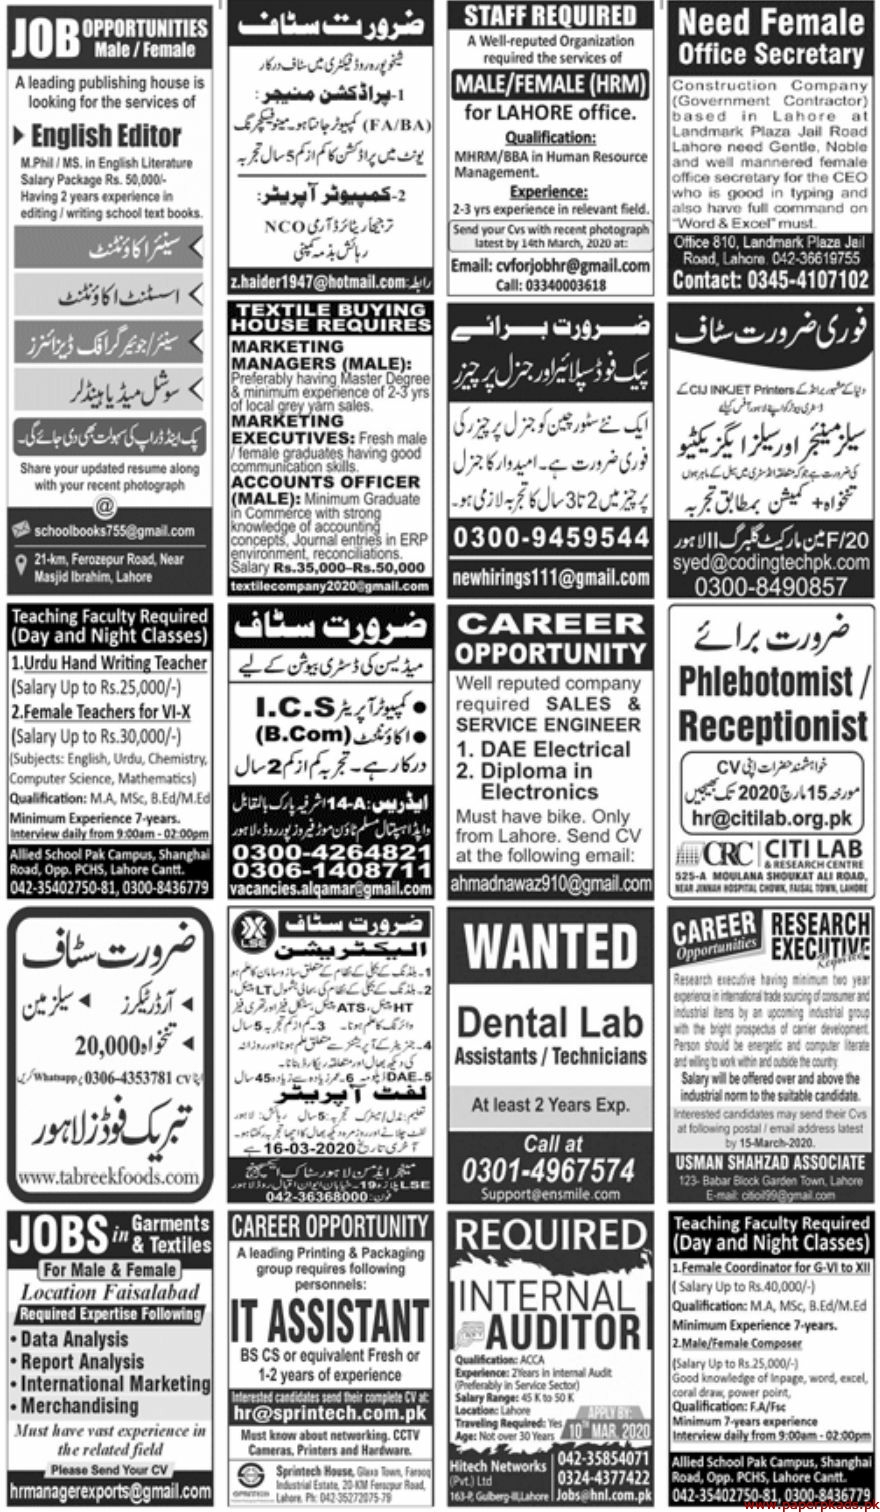 Jang Newspaper Jobs 08 March 2020 Latest